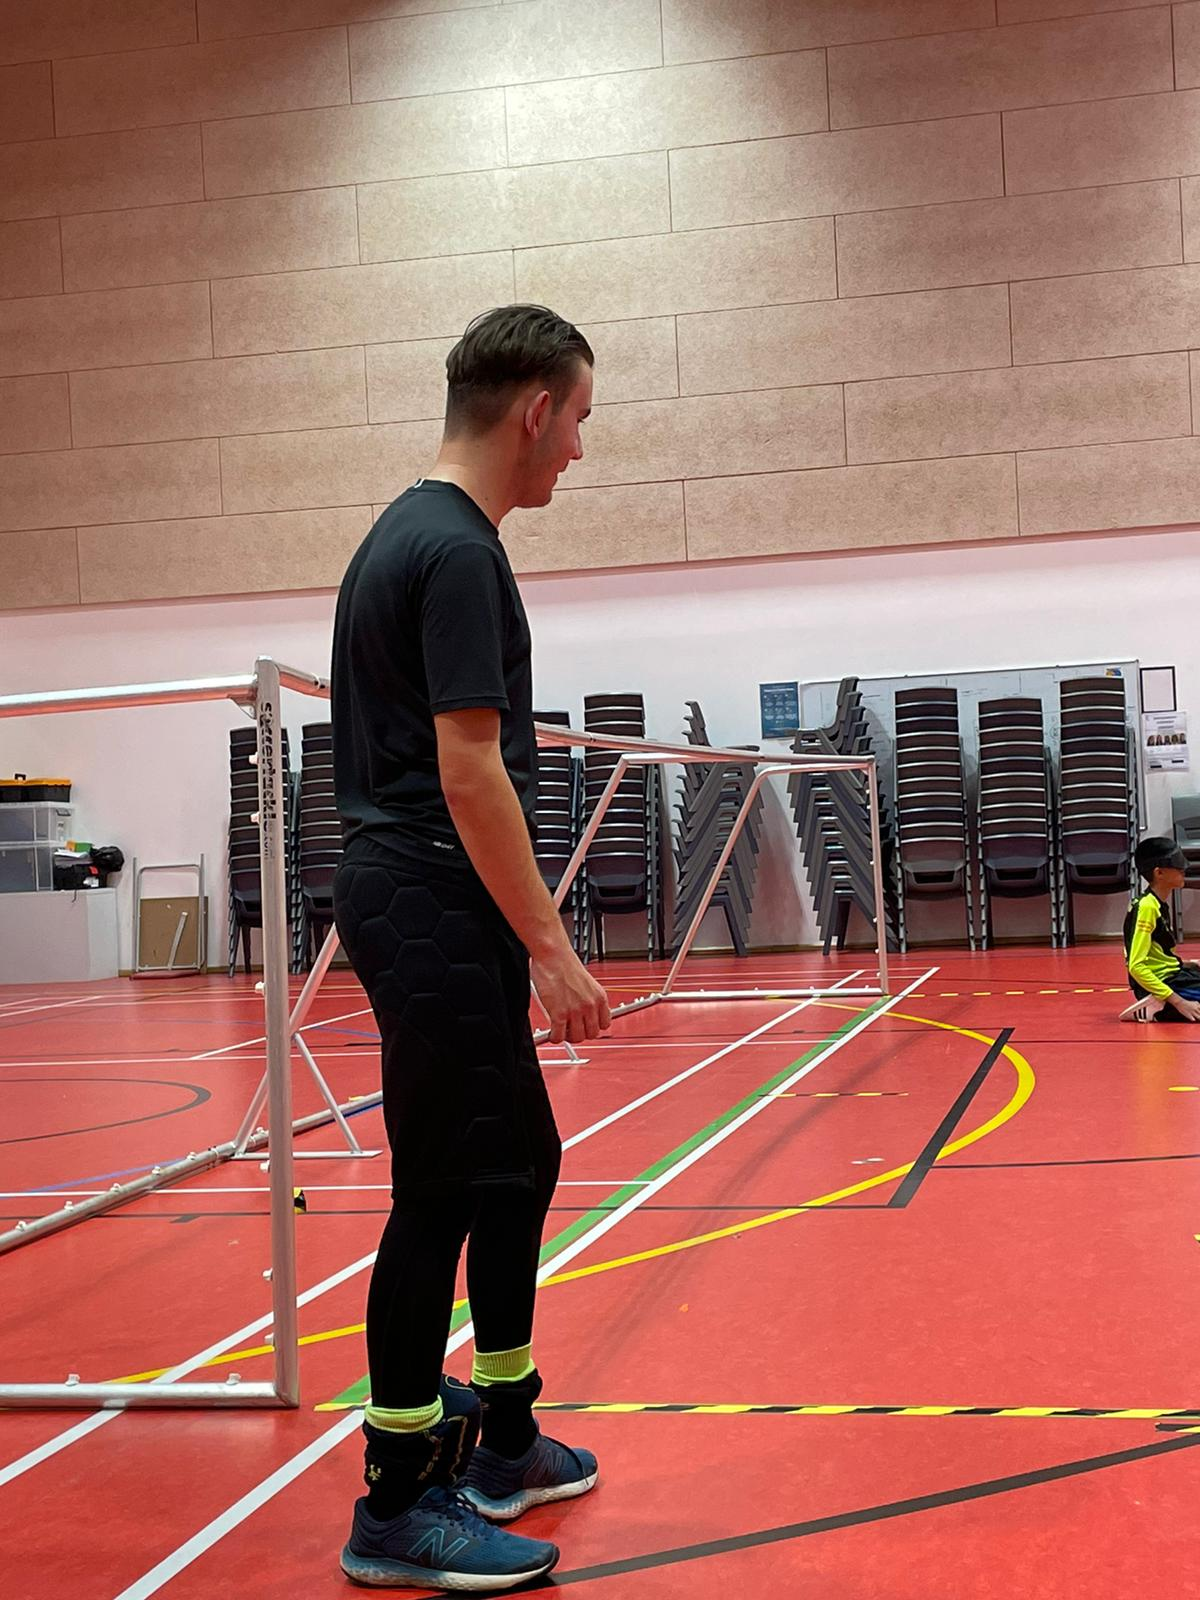 Jacob Hare stood next to the right corner of a goalball goal in a sports hall in a training session.